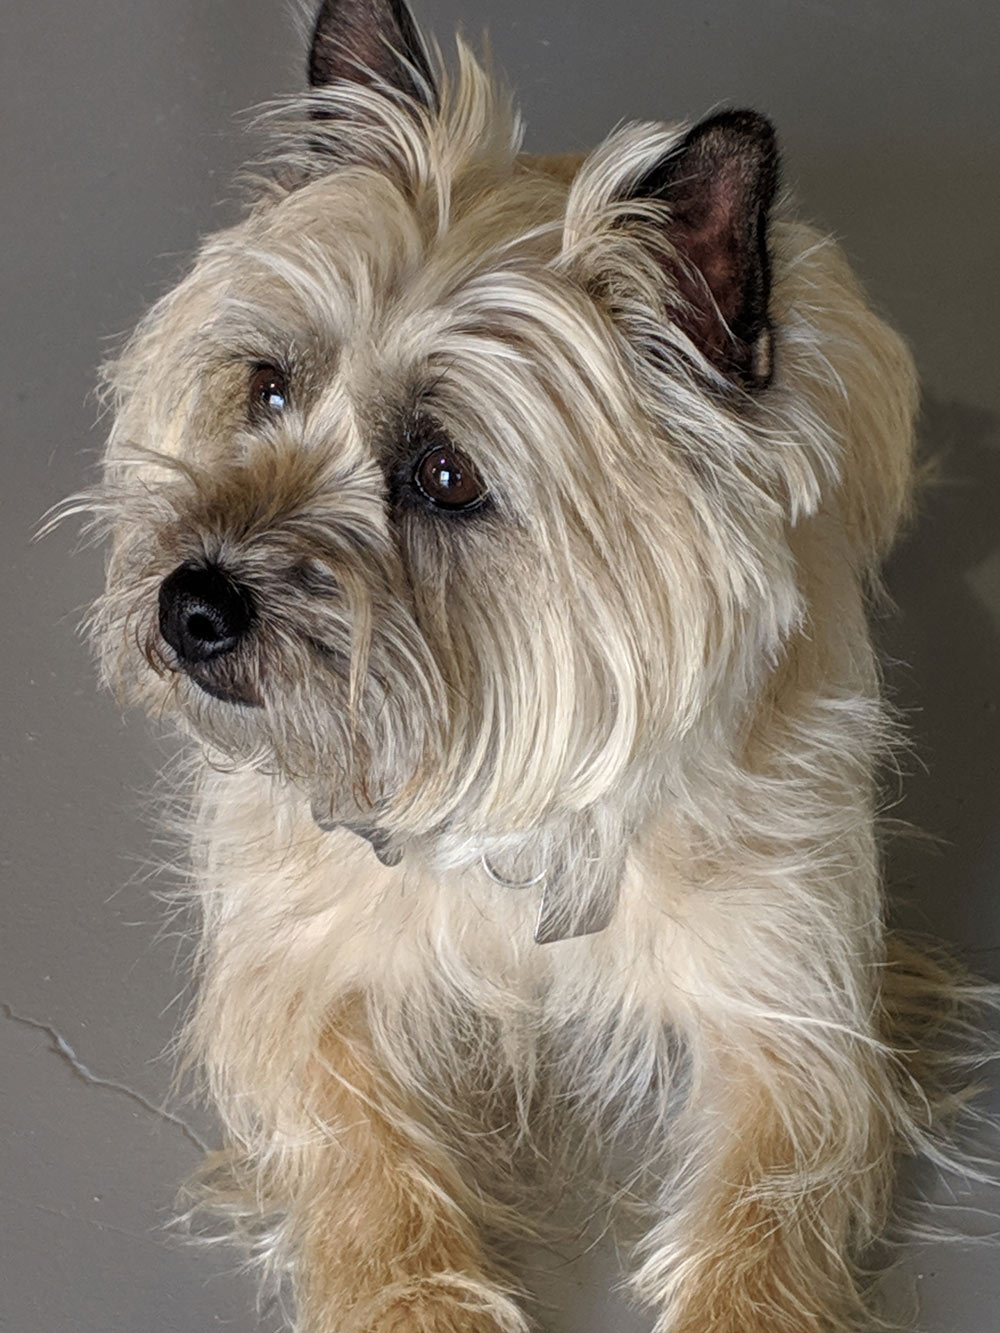 Meet Skyler. She's a five-year-old Cairn Terrier that Jack and Diane adopted a year and a half ago. She is smart and loves training; they adore her!